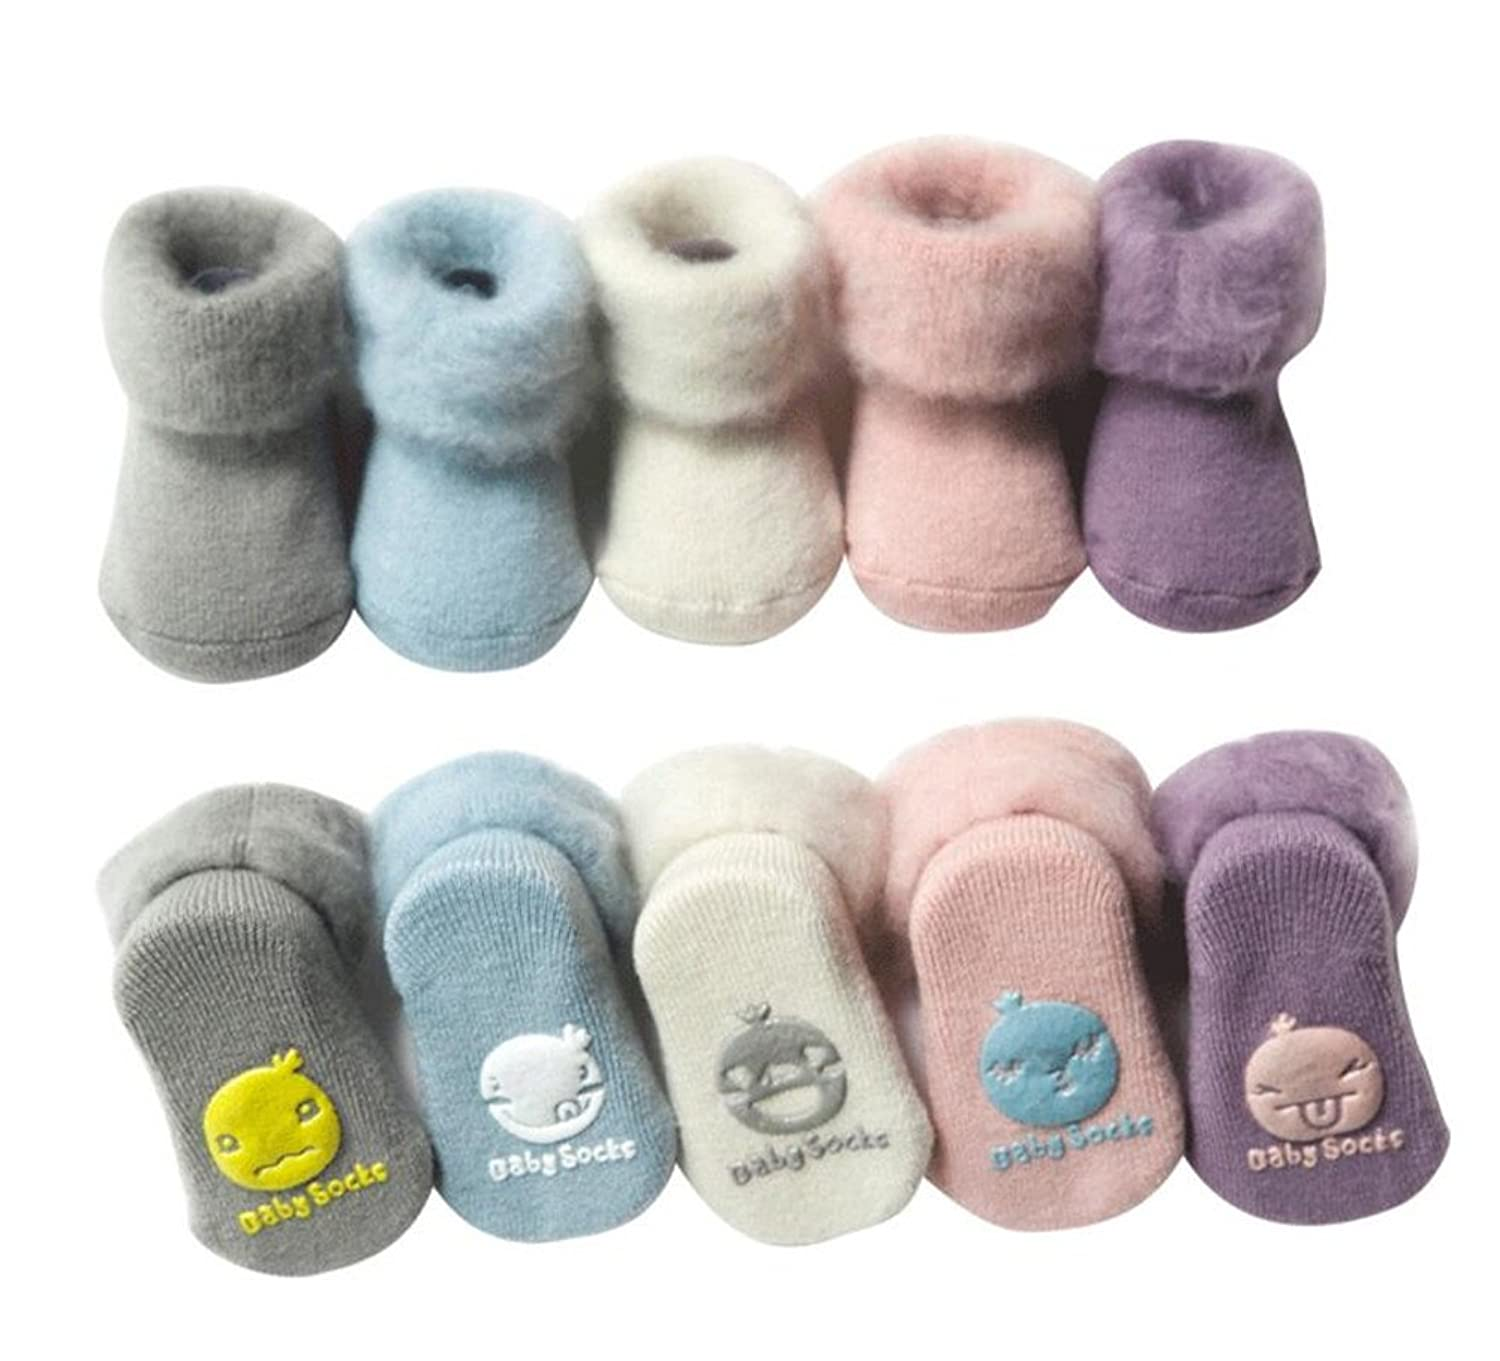 Unisex Baby Thick Thermal Snow Socks 5 Pairs Non-skid Floor Sock for Newborn Toddlers